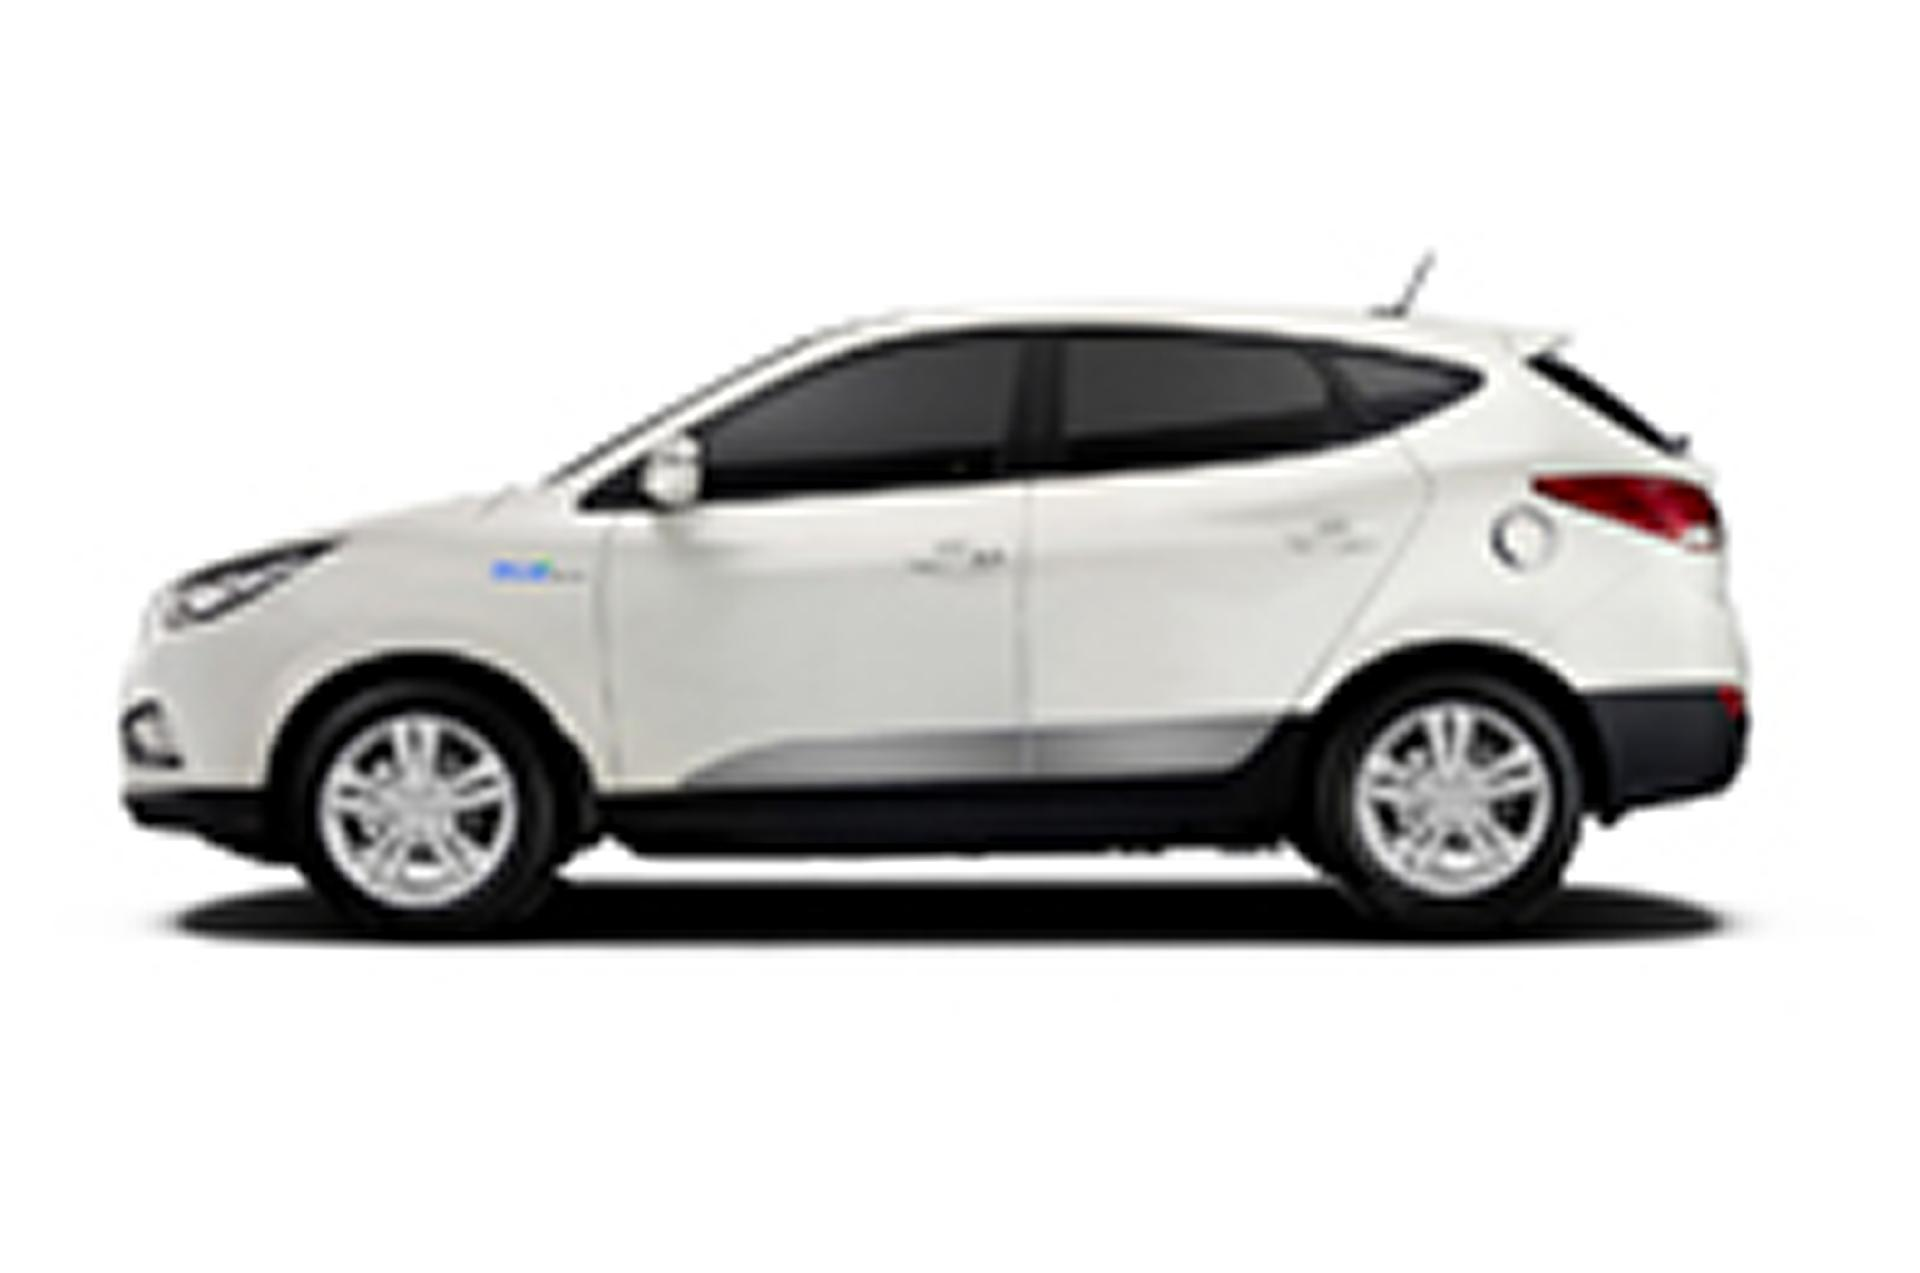 2014 hyundai tucson fuel cell technical specifications and data engine dimensions and. Black Bedroom Furniture Sets. Home Design Ideas